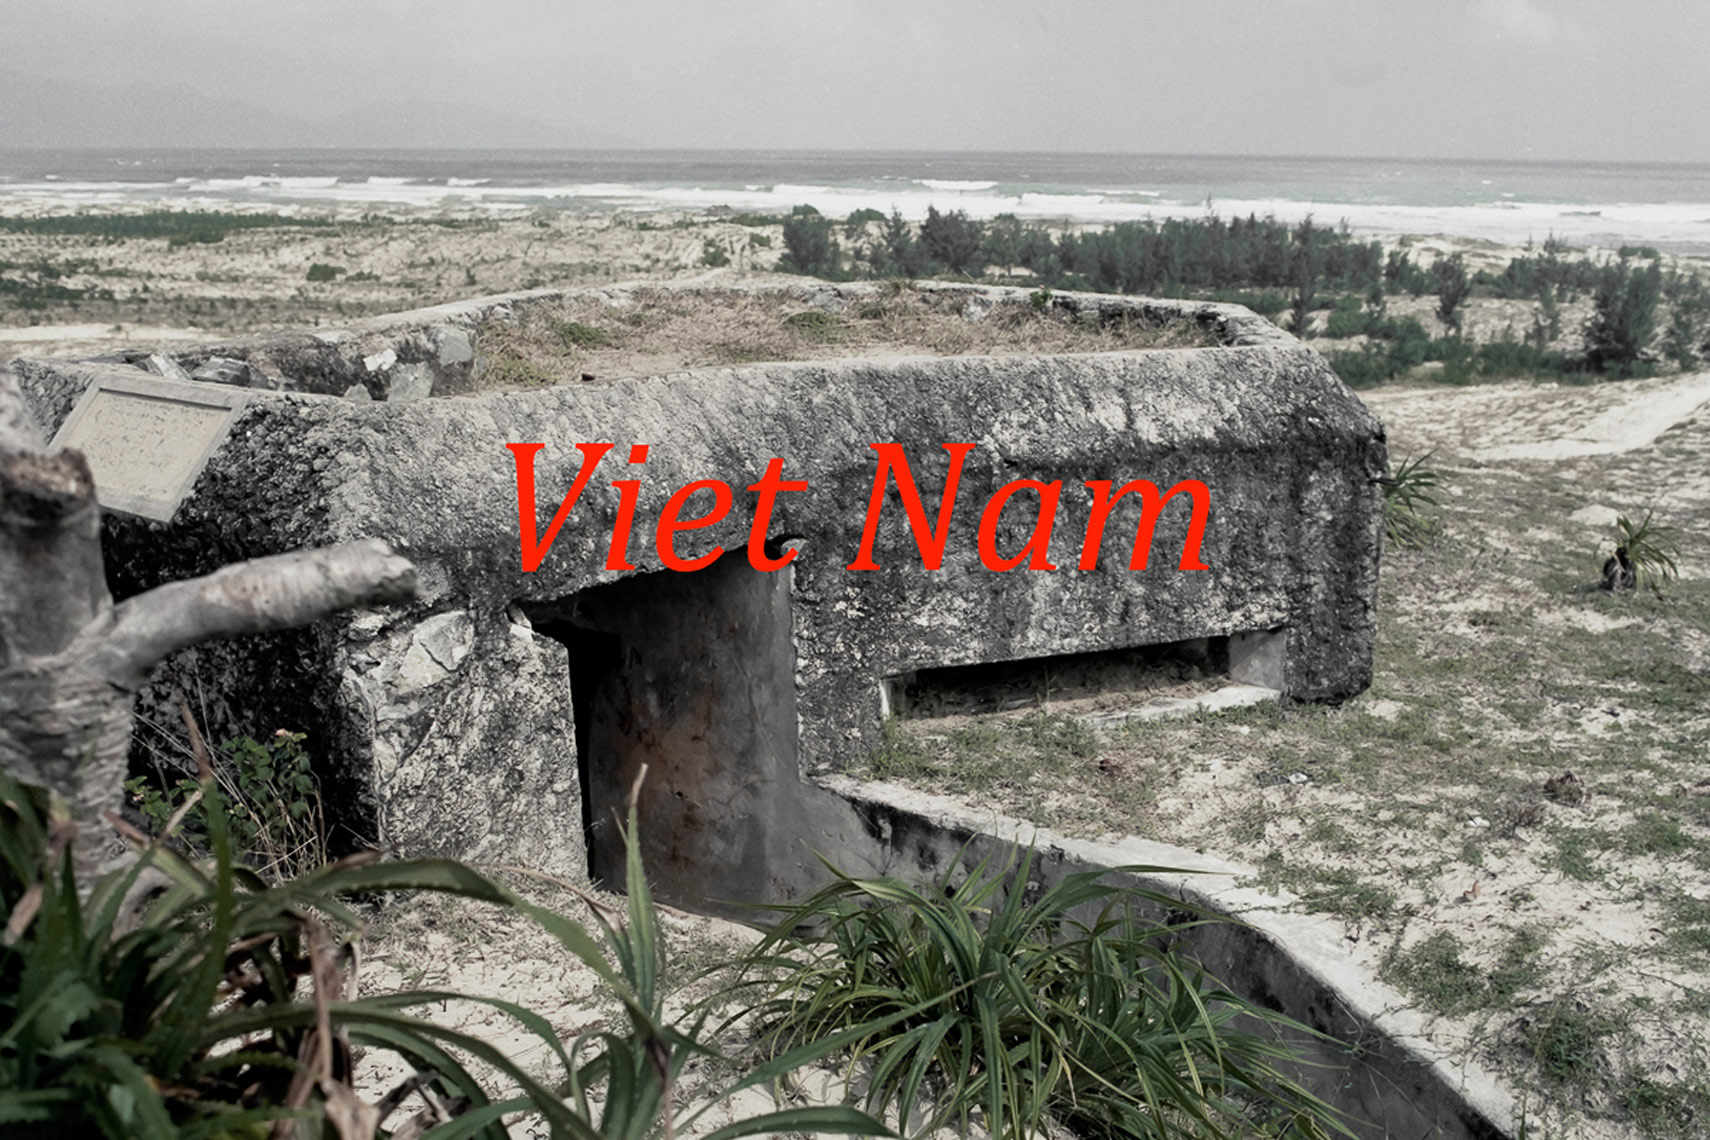 Red-Viet-Nam-Bunker-for-web